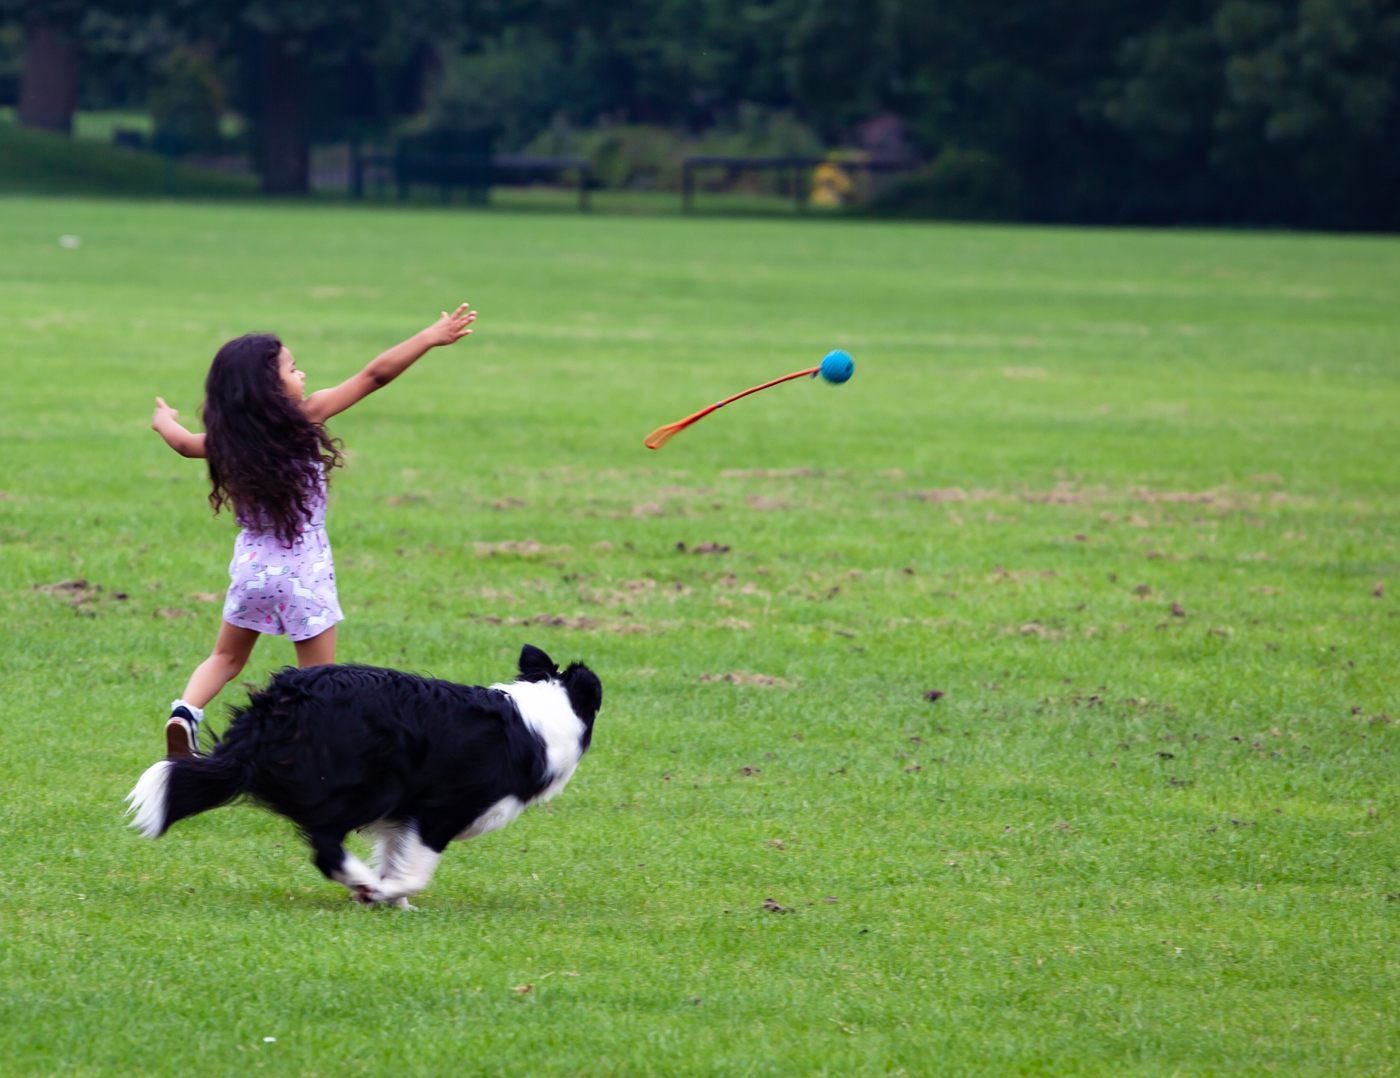 A child throwing a toy for her dog in a grassy field